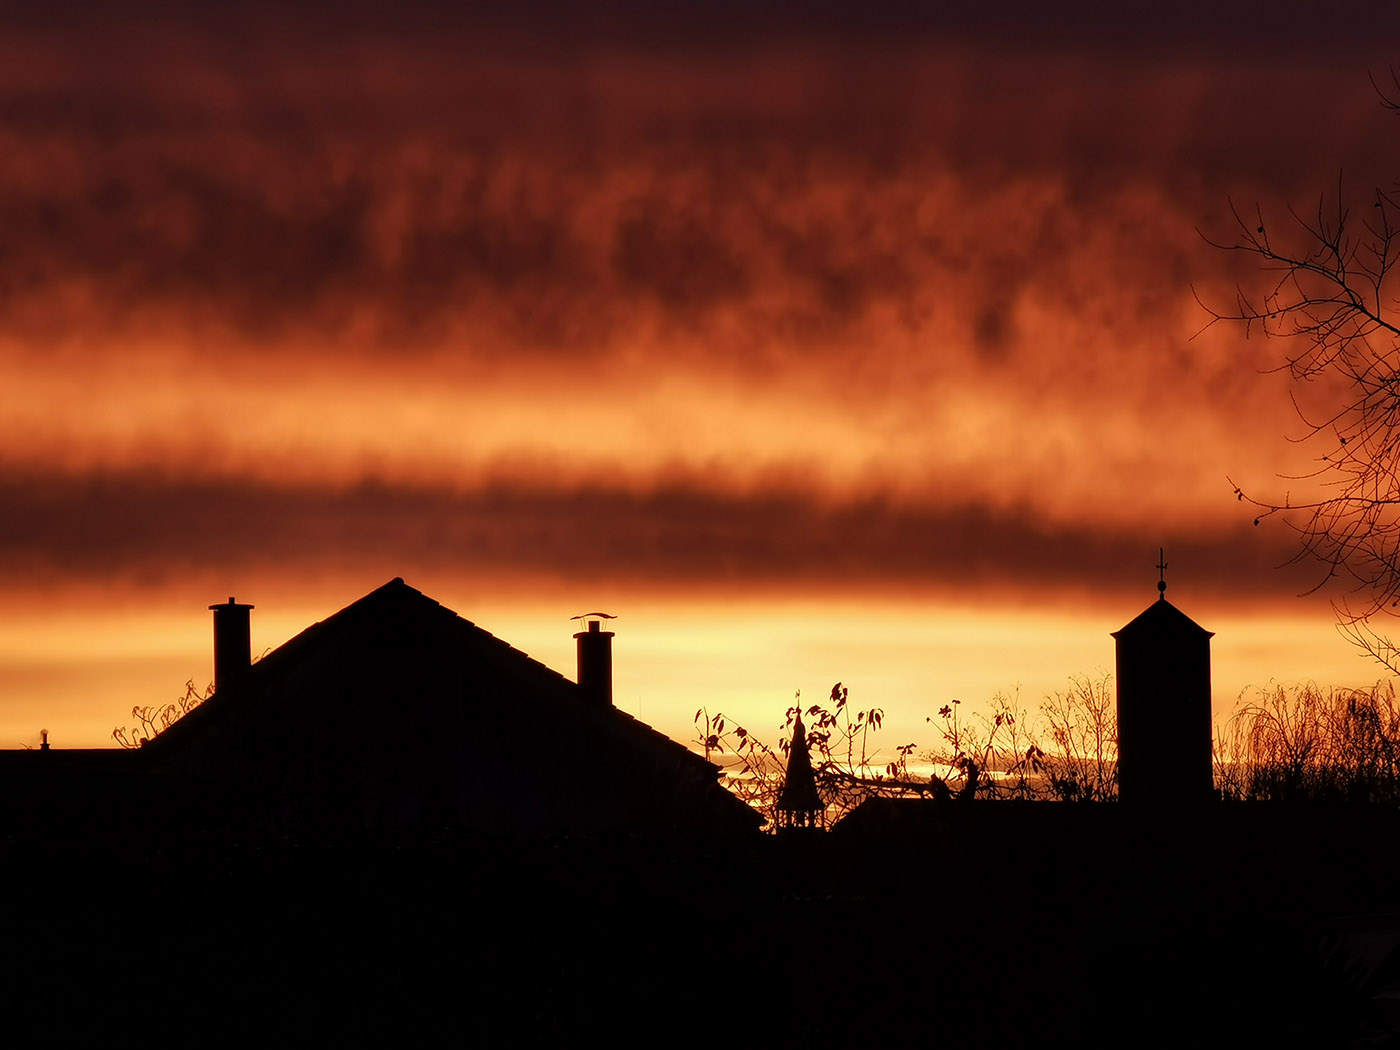 Morgenrot in St. Leon-Rot